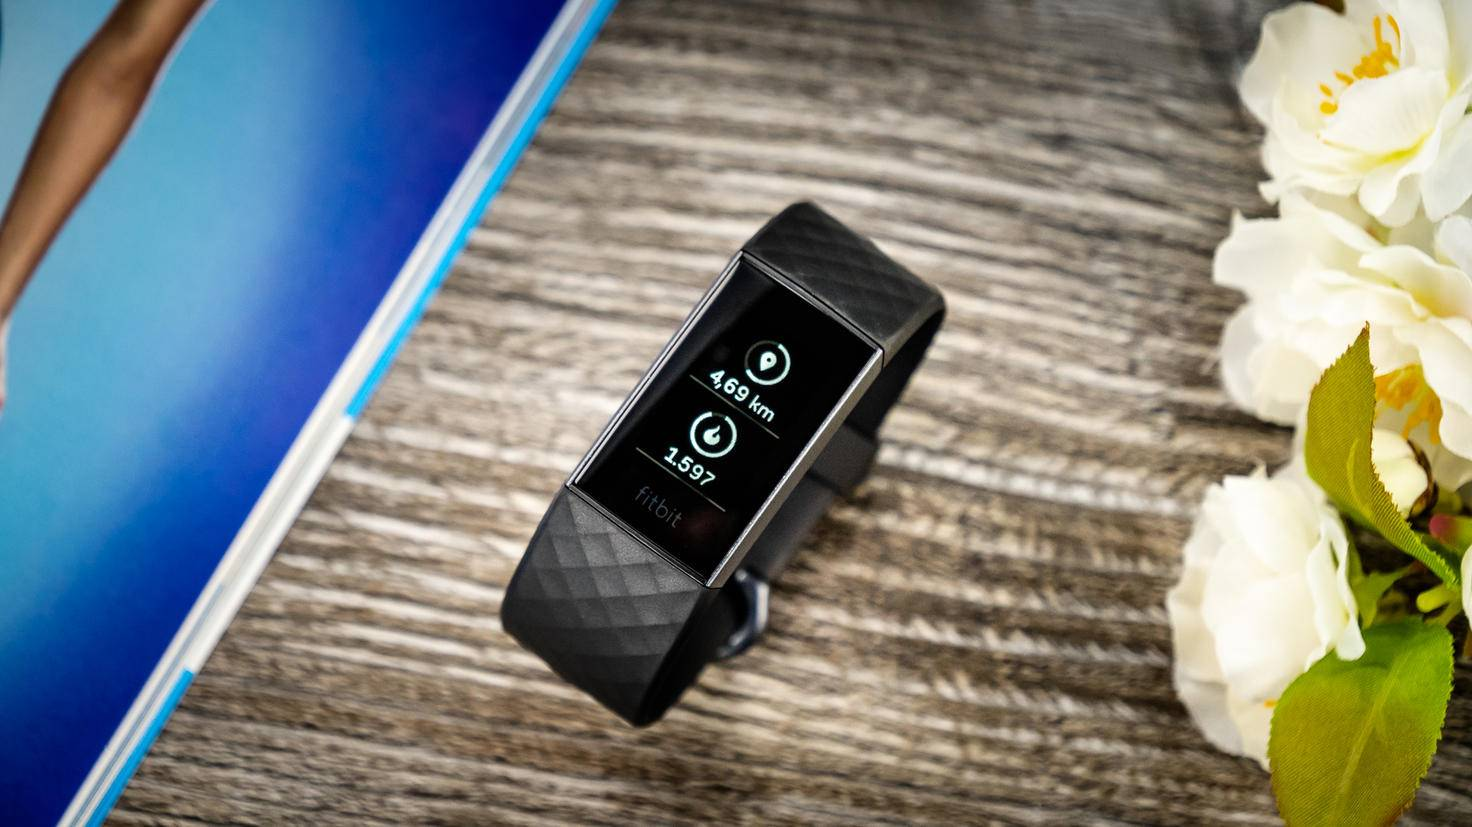 Das Standardmodell des Fitbit Charge 3.